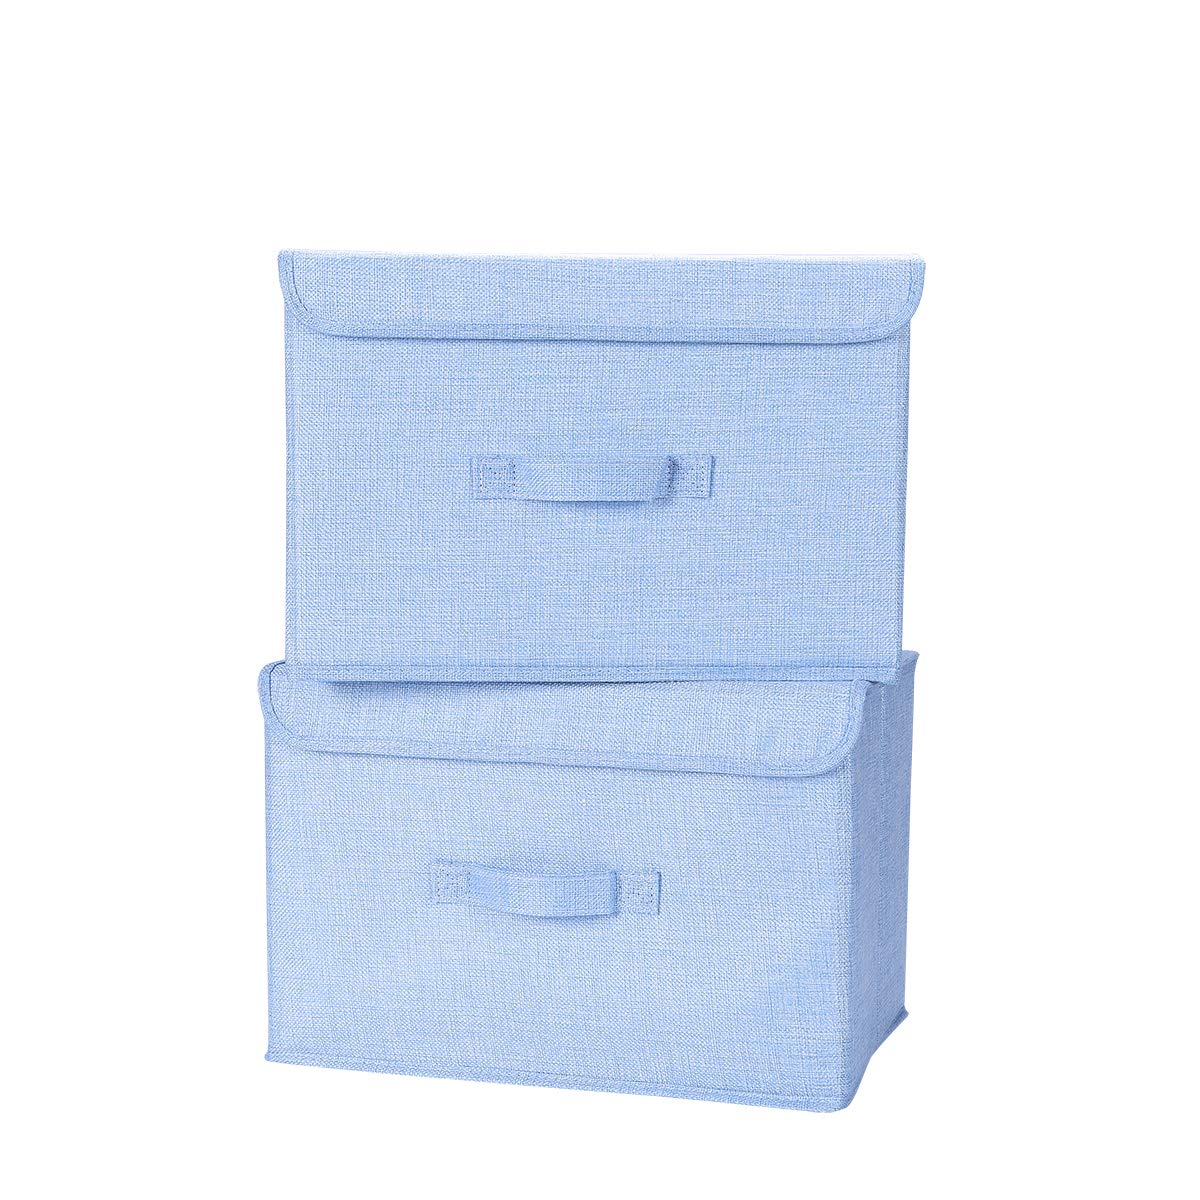 Closet Nursery Office Bedroom Navy Blue Living Room HOKEMP Extra Large Foldable Storage Cubes Bin Box Containers with Lid Gray for Home